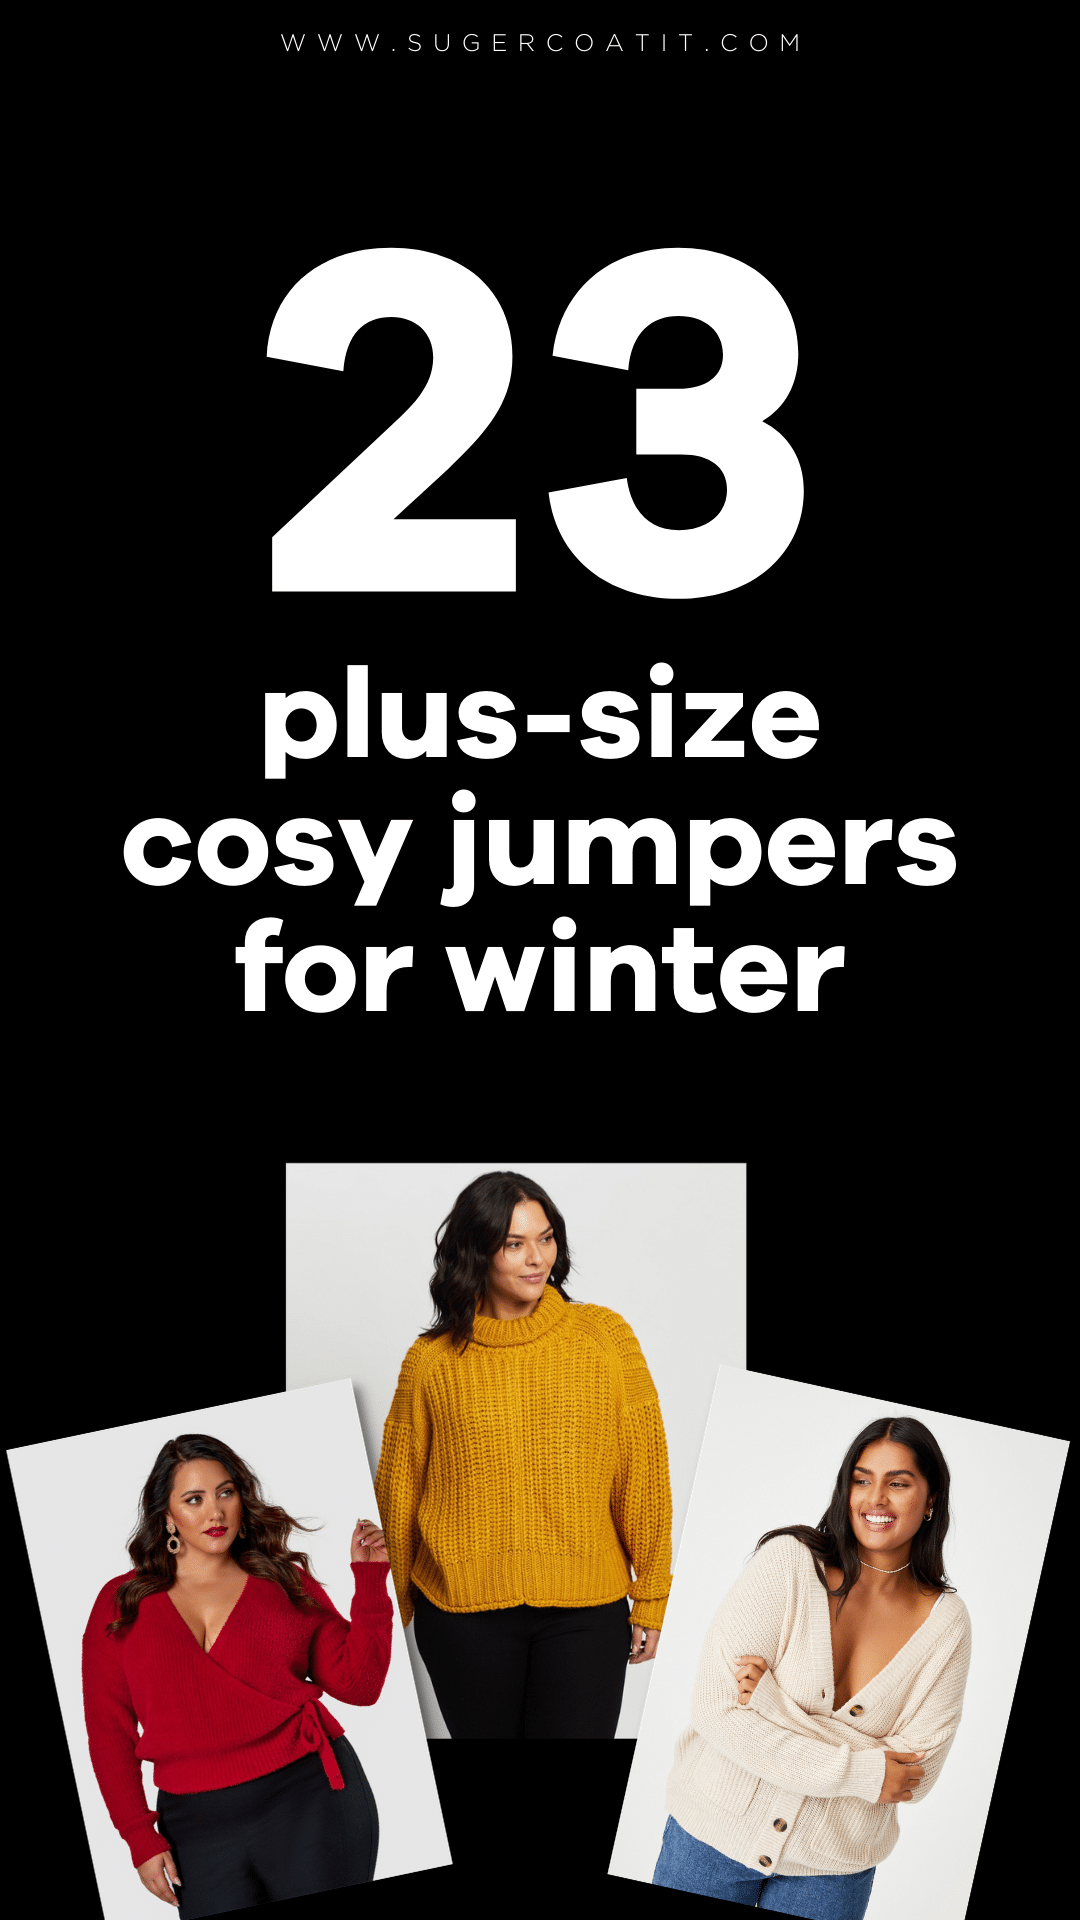 23 plus-size cosy jumpers for winter - Suger Coat It